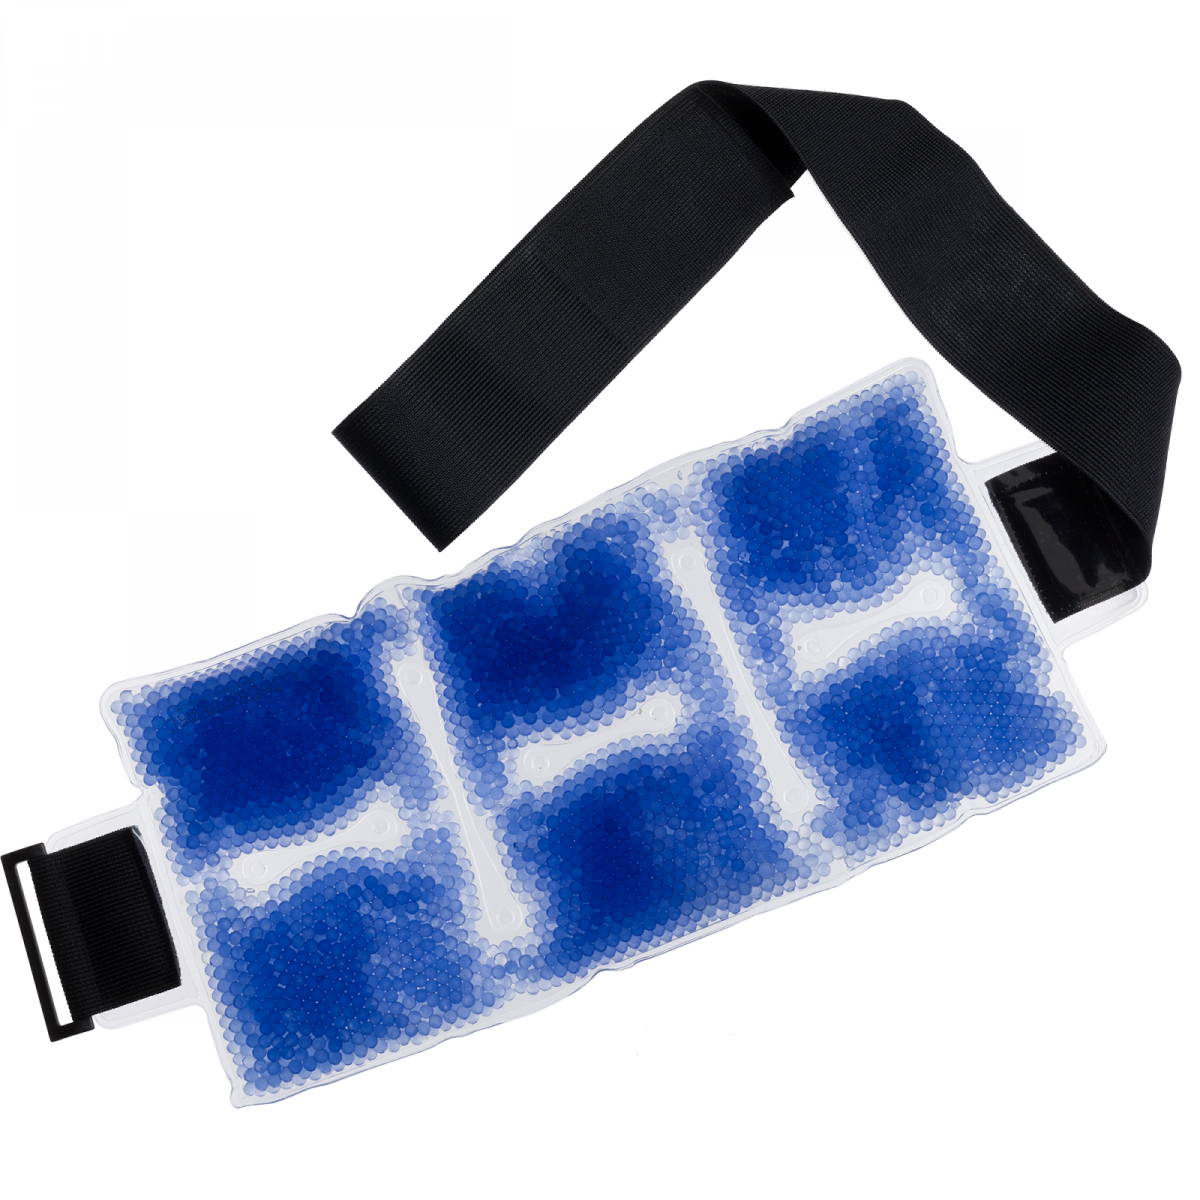 Therapearl blue color changing backwrap with black strap